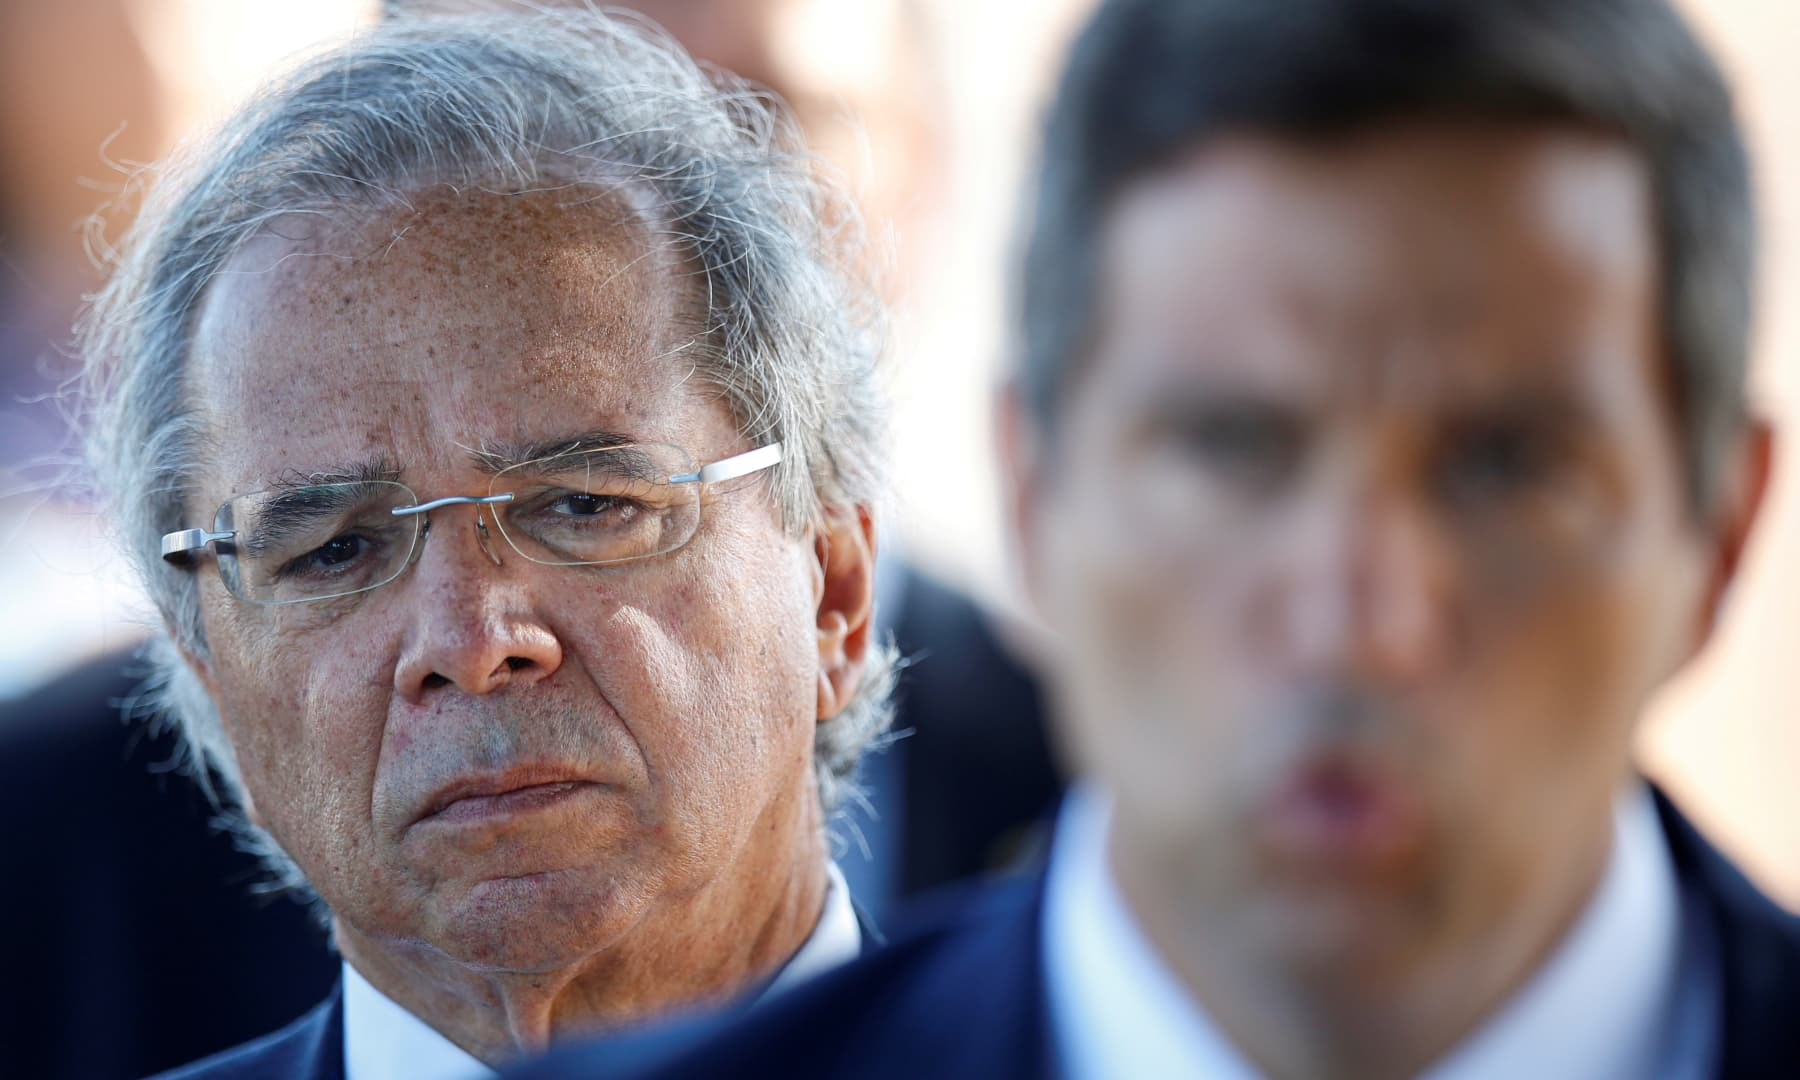 Brazil's Economy Minister Paulo Guedes listens to Brazil's Central Bank President Roberto Campos Neto, as he leaves Alvorada Palace in Brasilia, Brazil on April 27, 2020. — Reuters/File